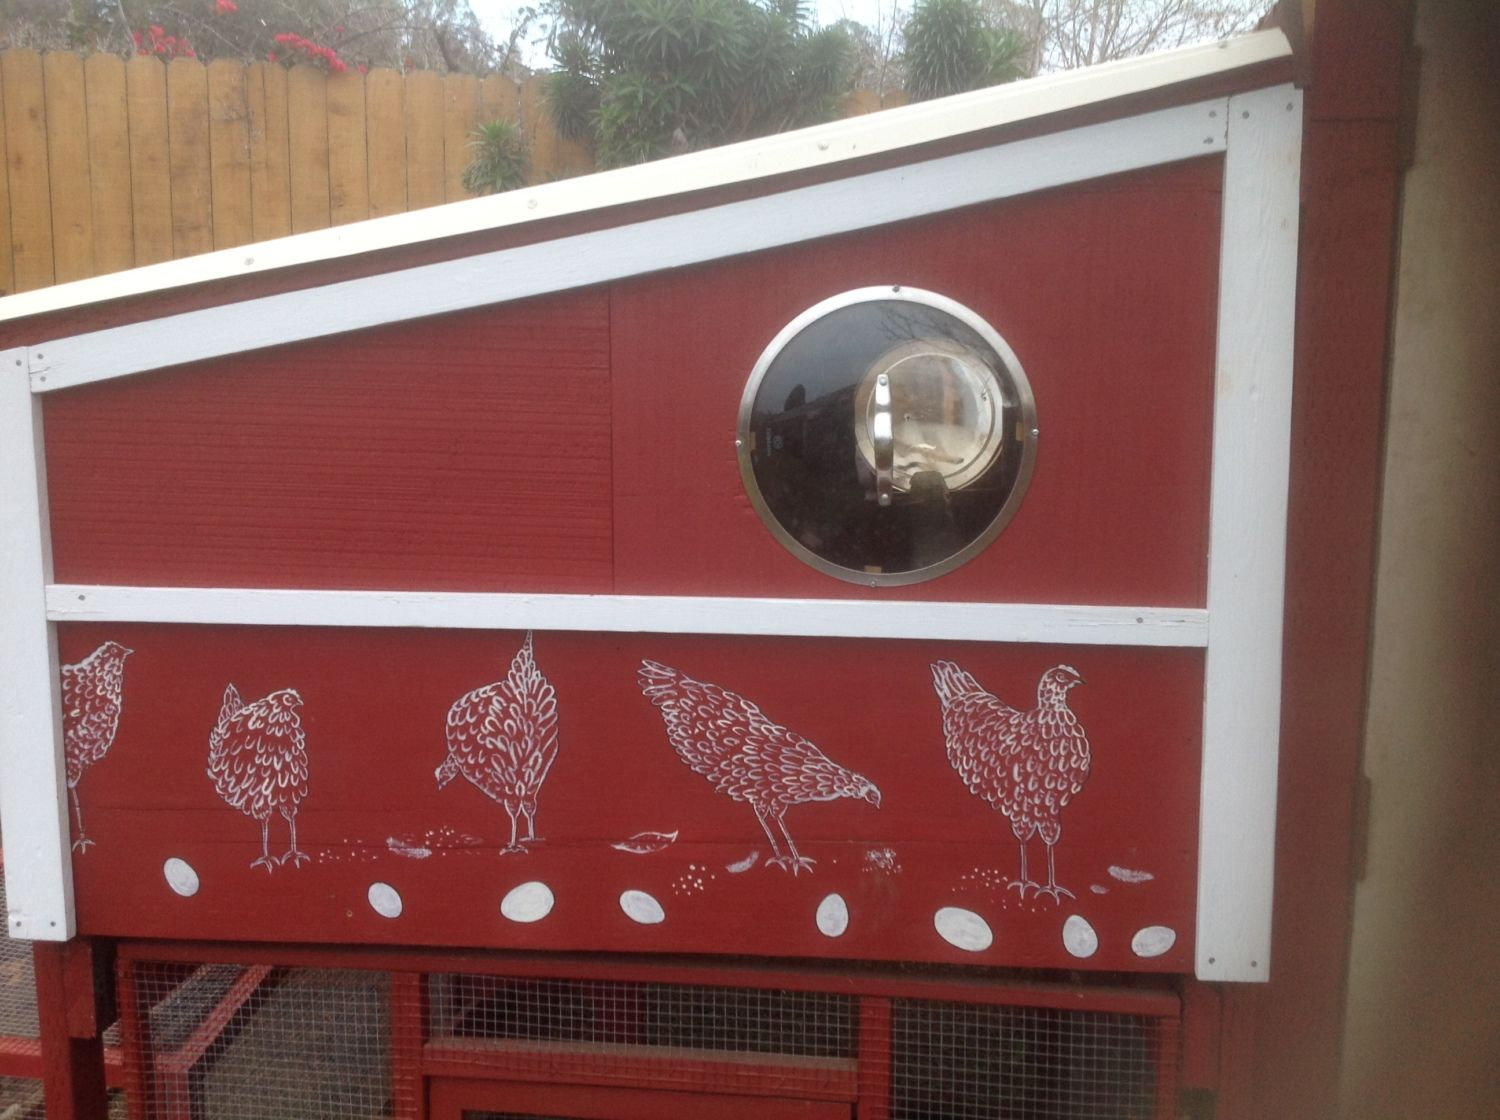 Here you can see the two round windows, one on either end of the coop.